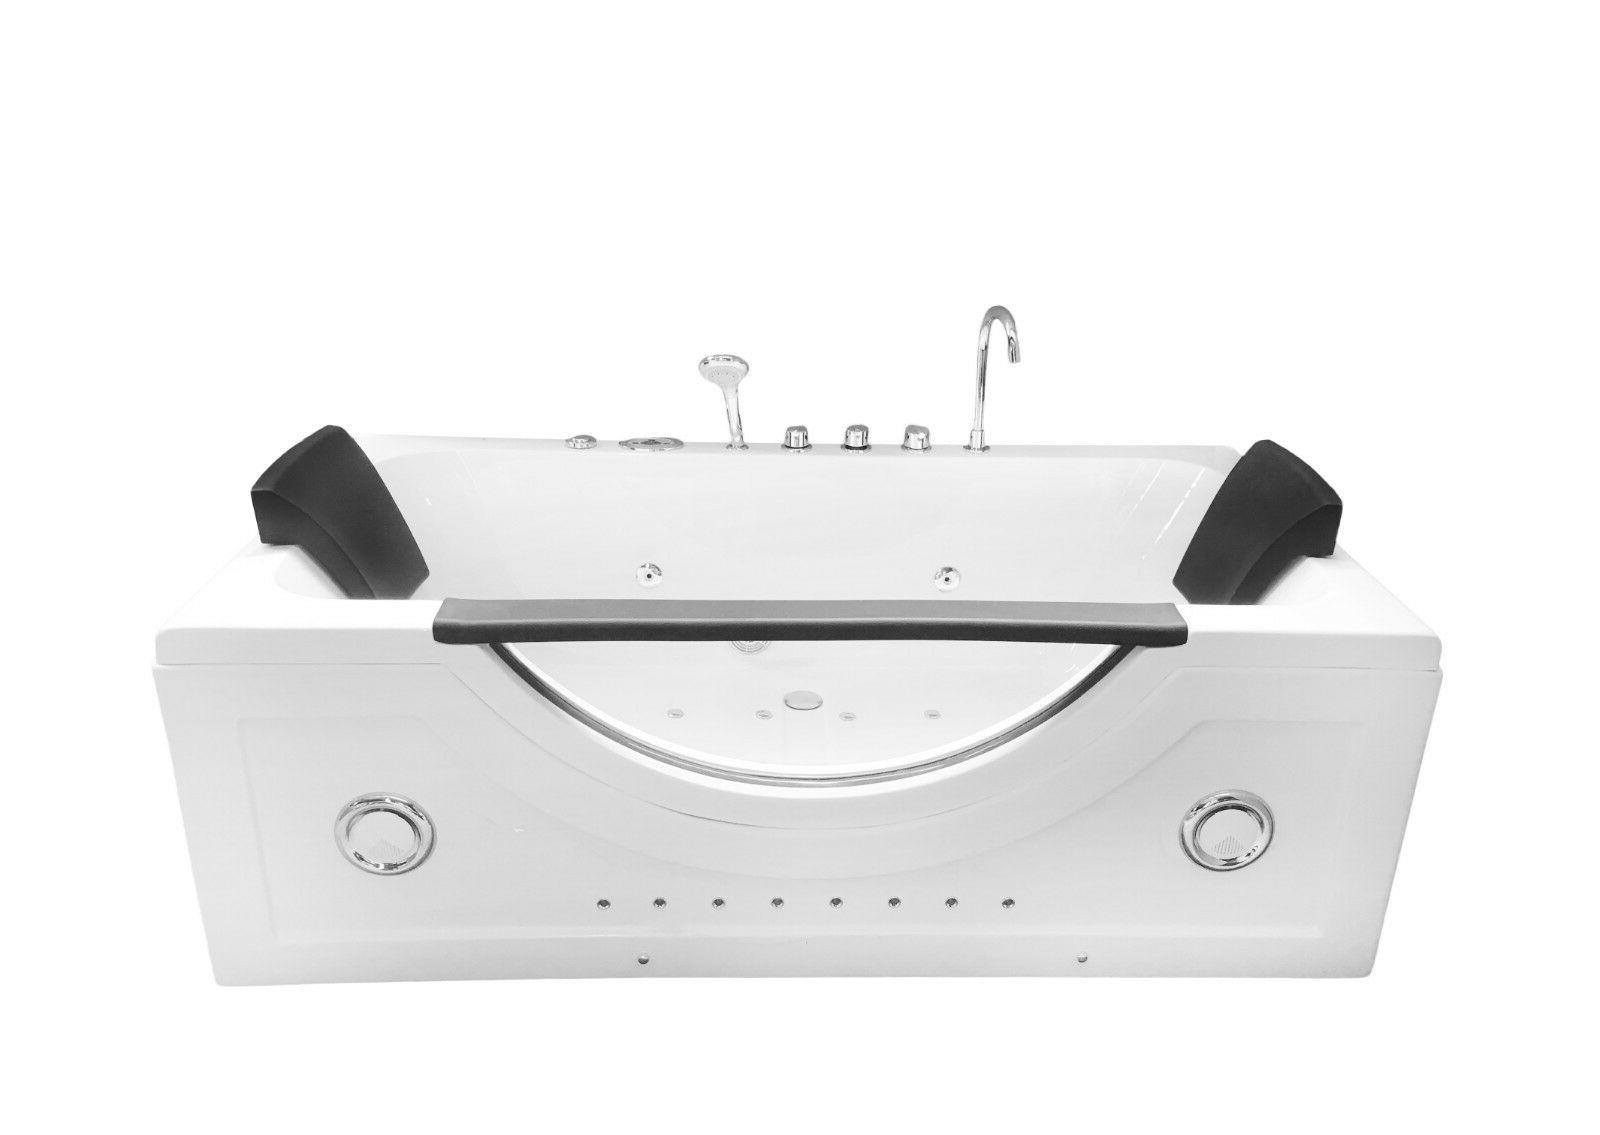 Whirlpool massage bathtub hot 2 two person